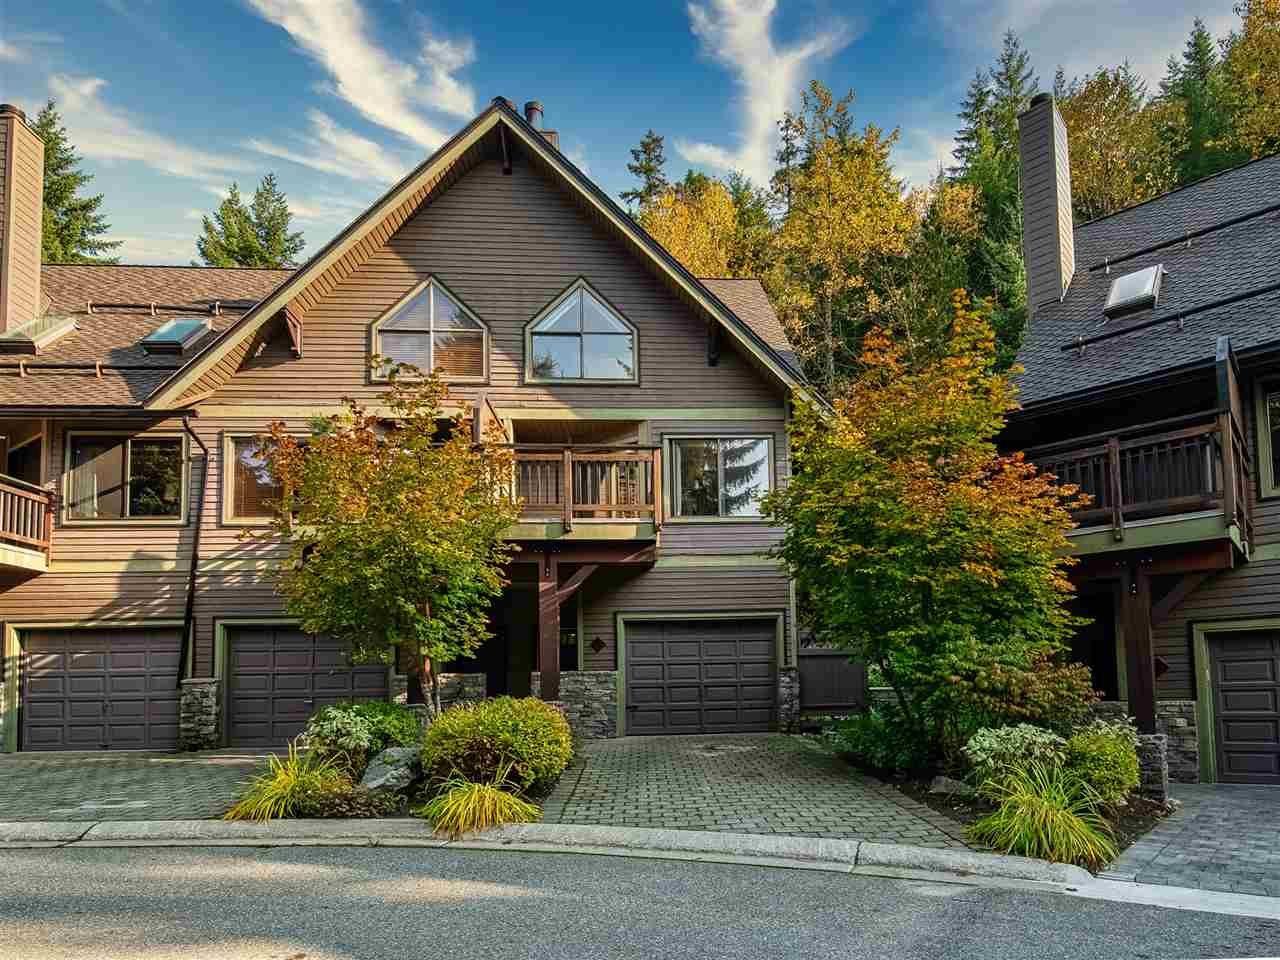 5 2014 LONDON LANE - Whistler Creek Townhouse for sale, 4 Bedrooms (R2506495)